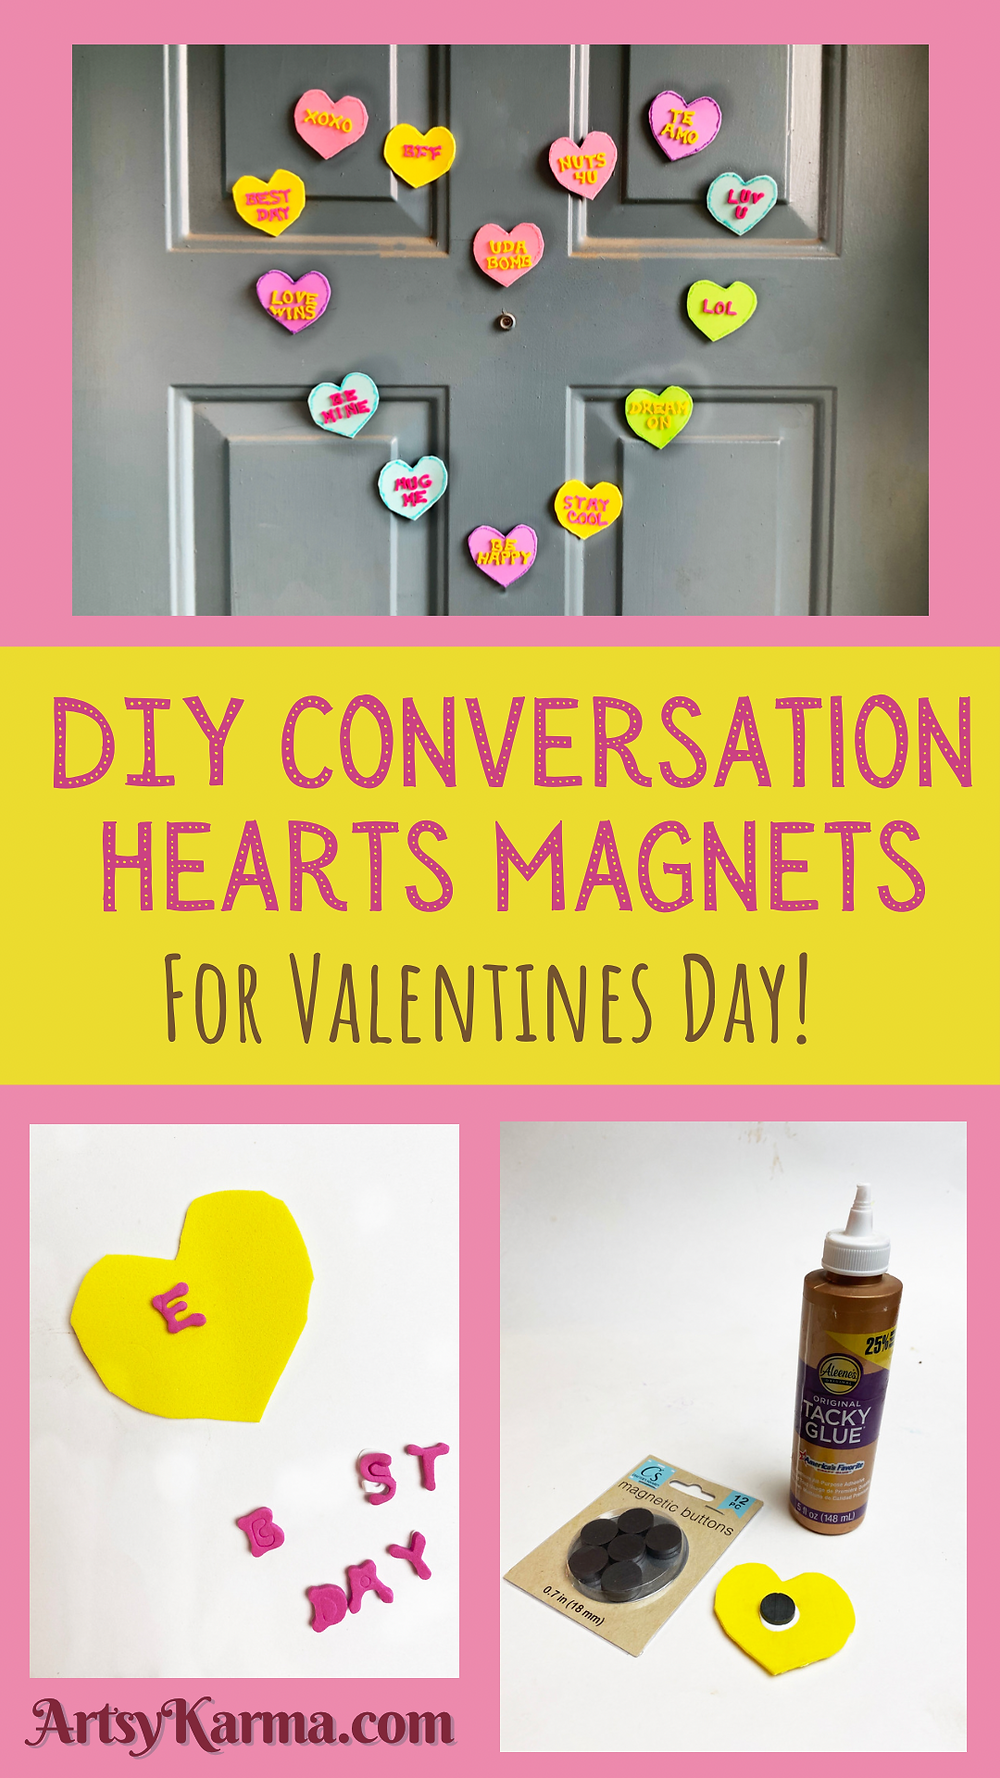 DIY conversation hearts magnets for valentines day